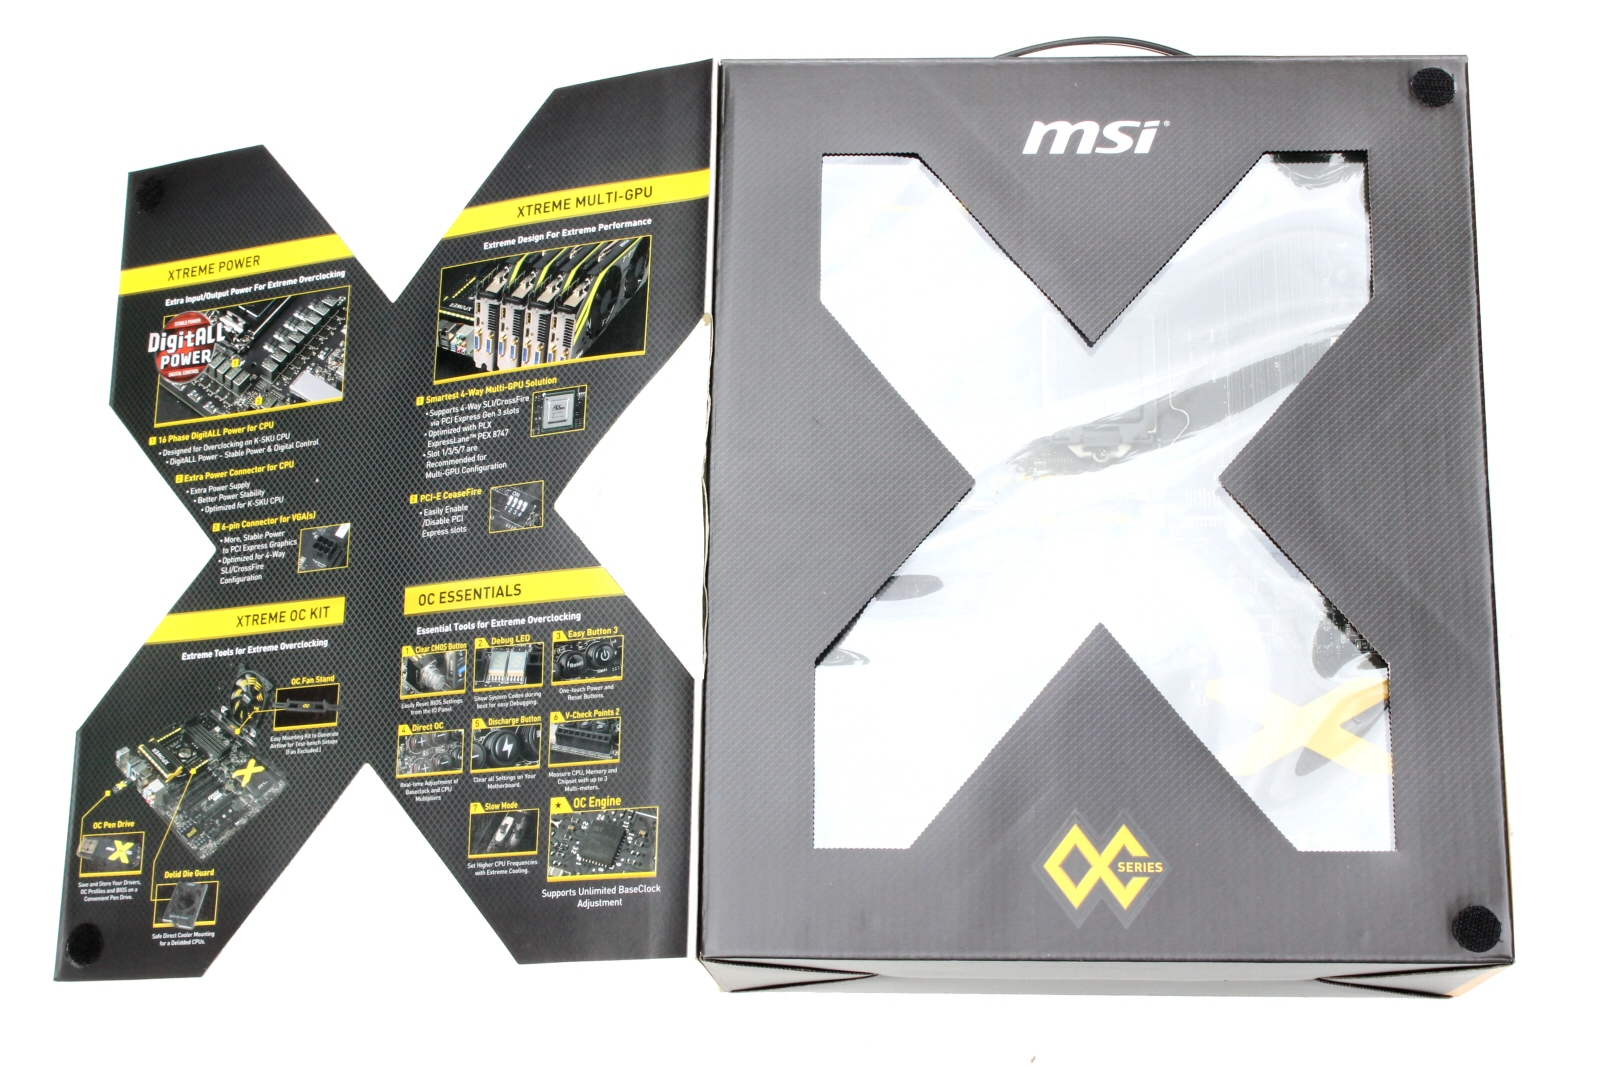 [Review] MSI Z97 XPower AC-img_5244.jpg